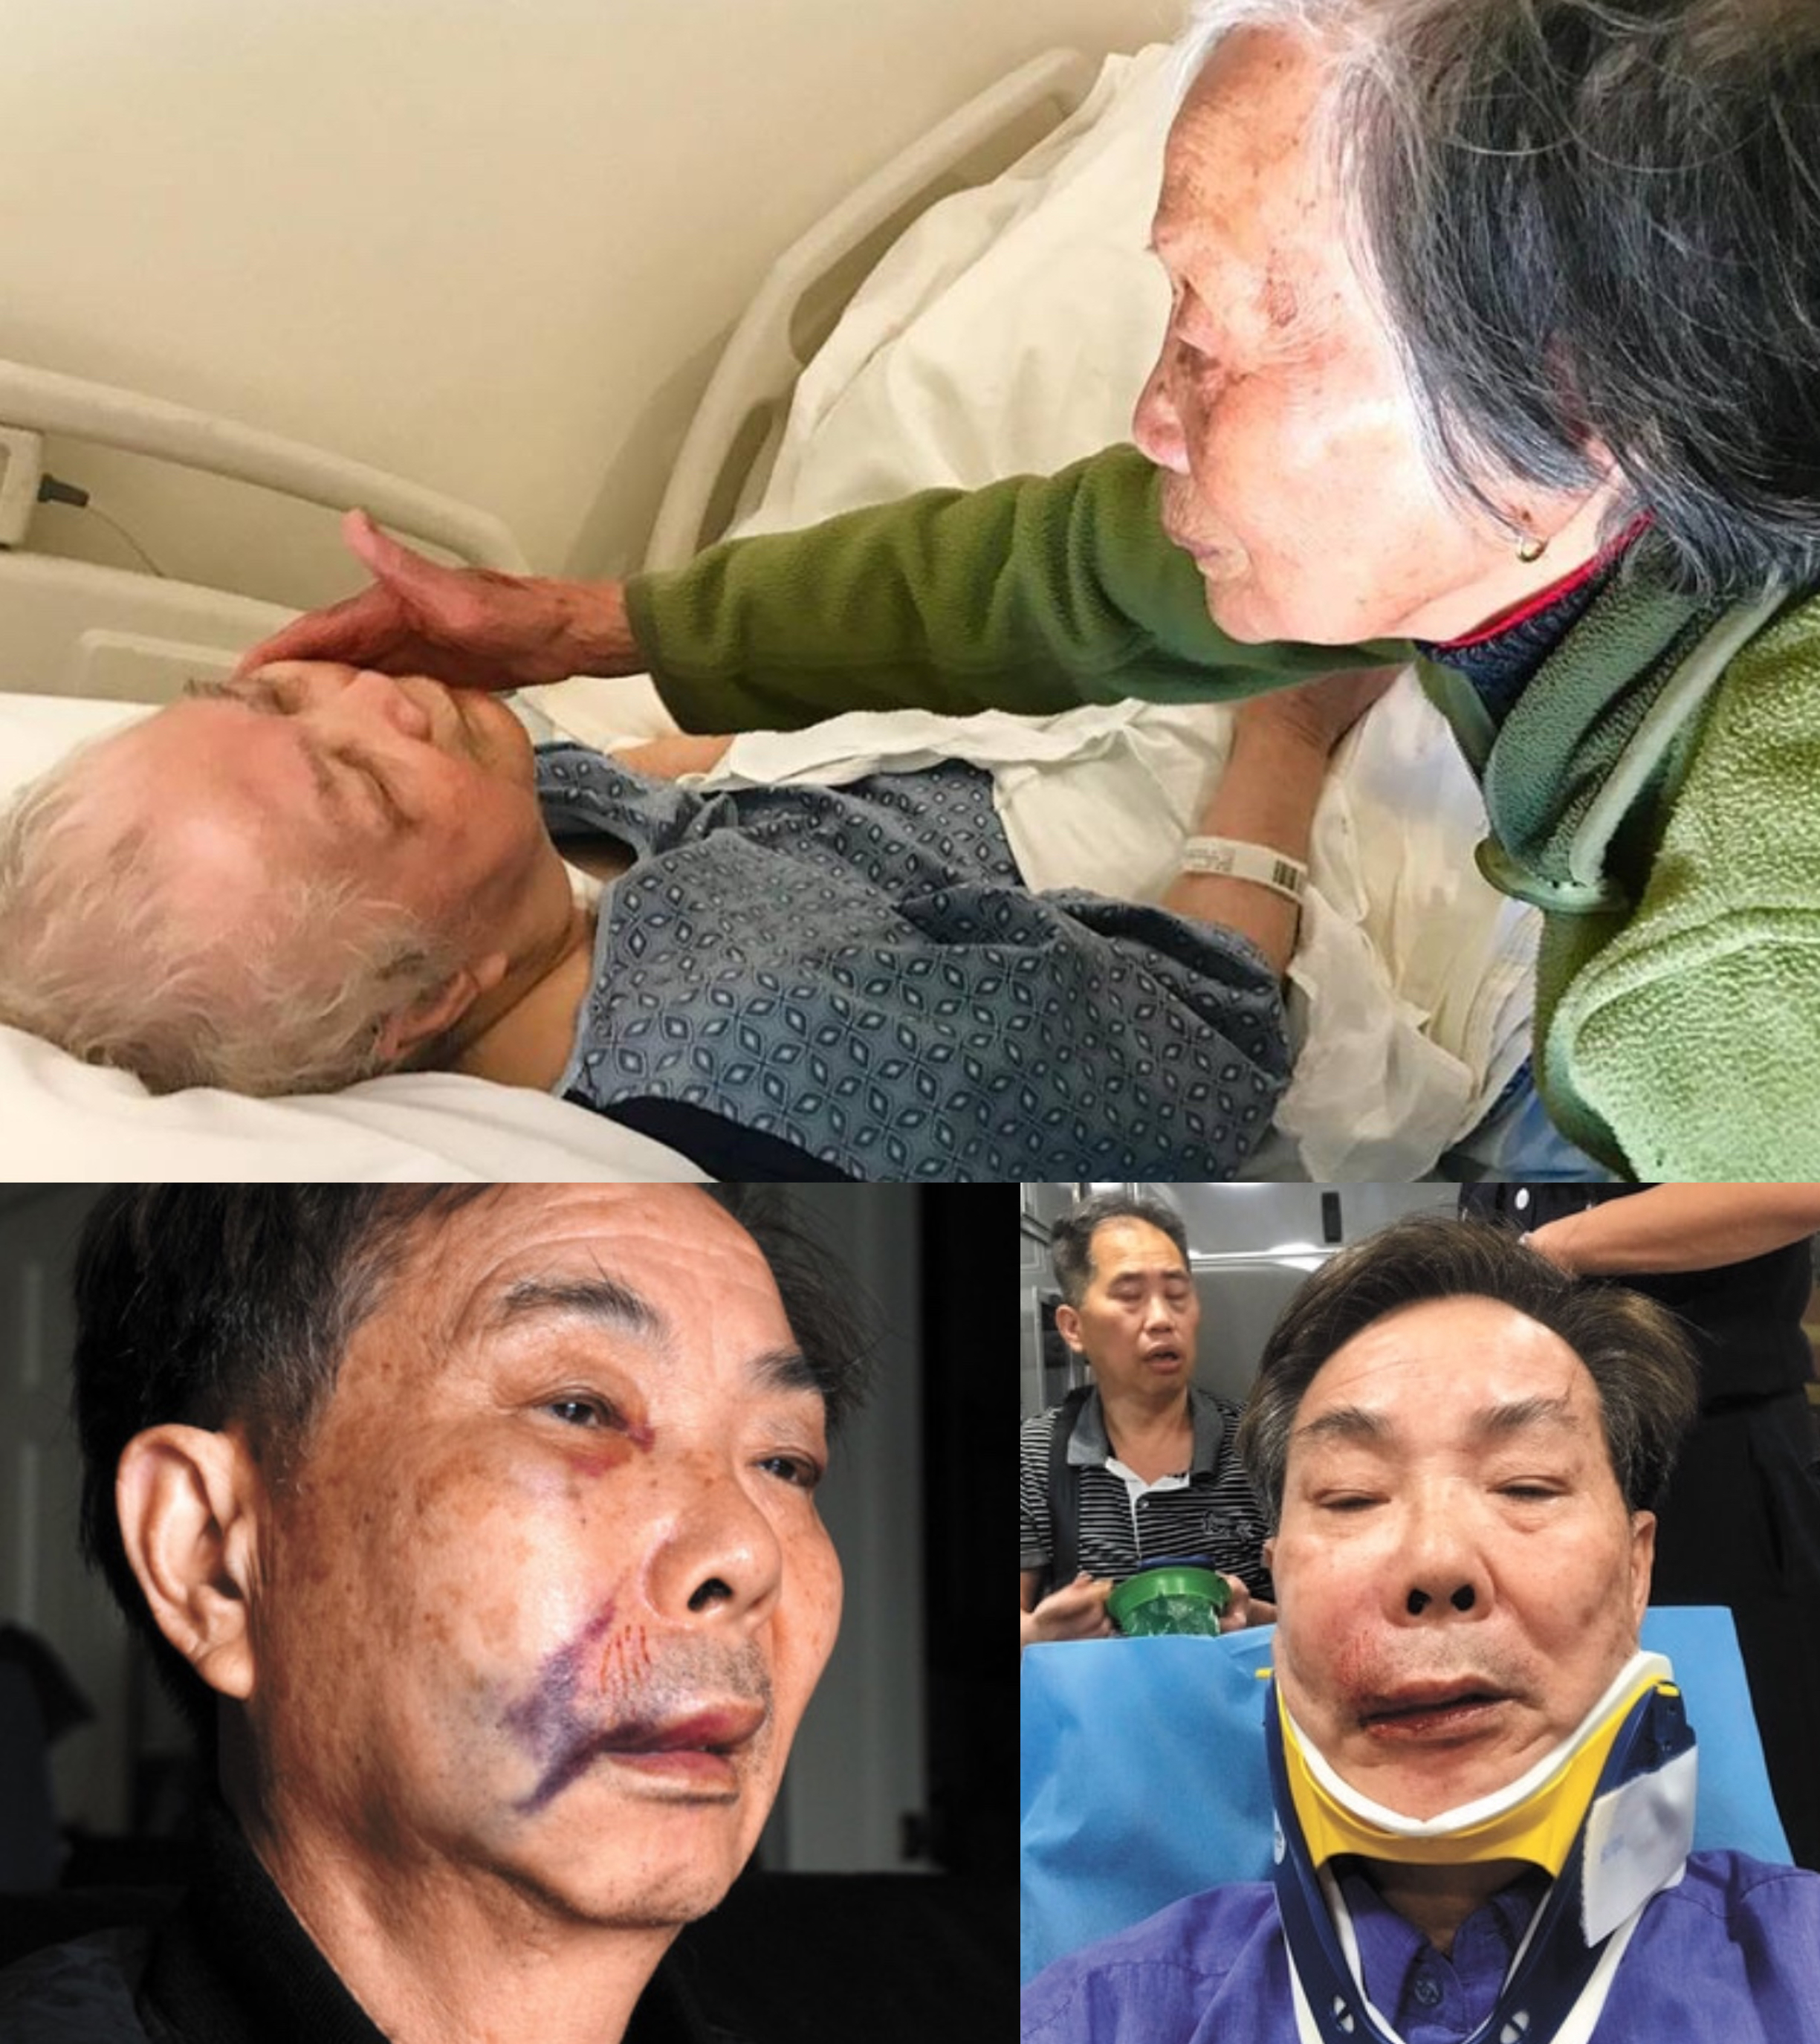 Recent victims of attacks on seniors in the Chinese community. Photo credits: Sasanna Yee and Sing Tao Daily.